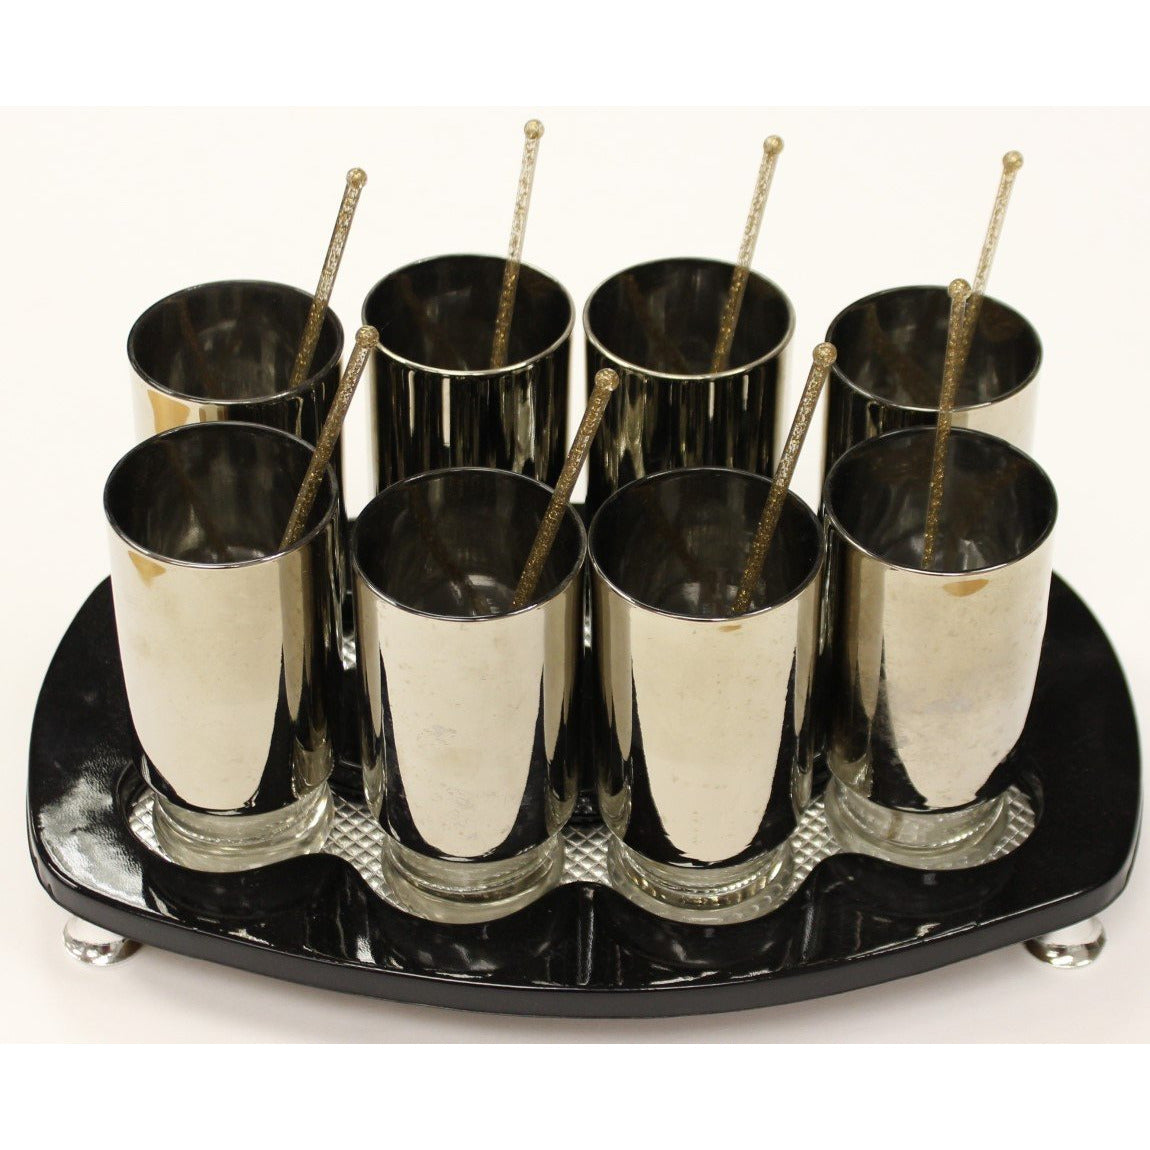 Set of 8 Cocktail Silver Glasses on Black Serving Tray